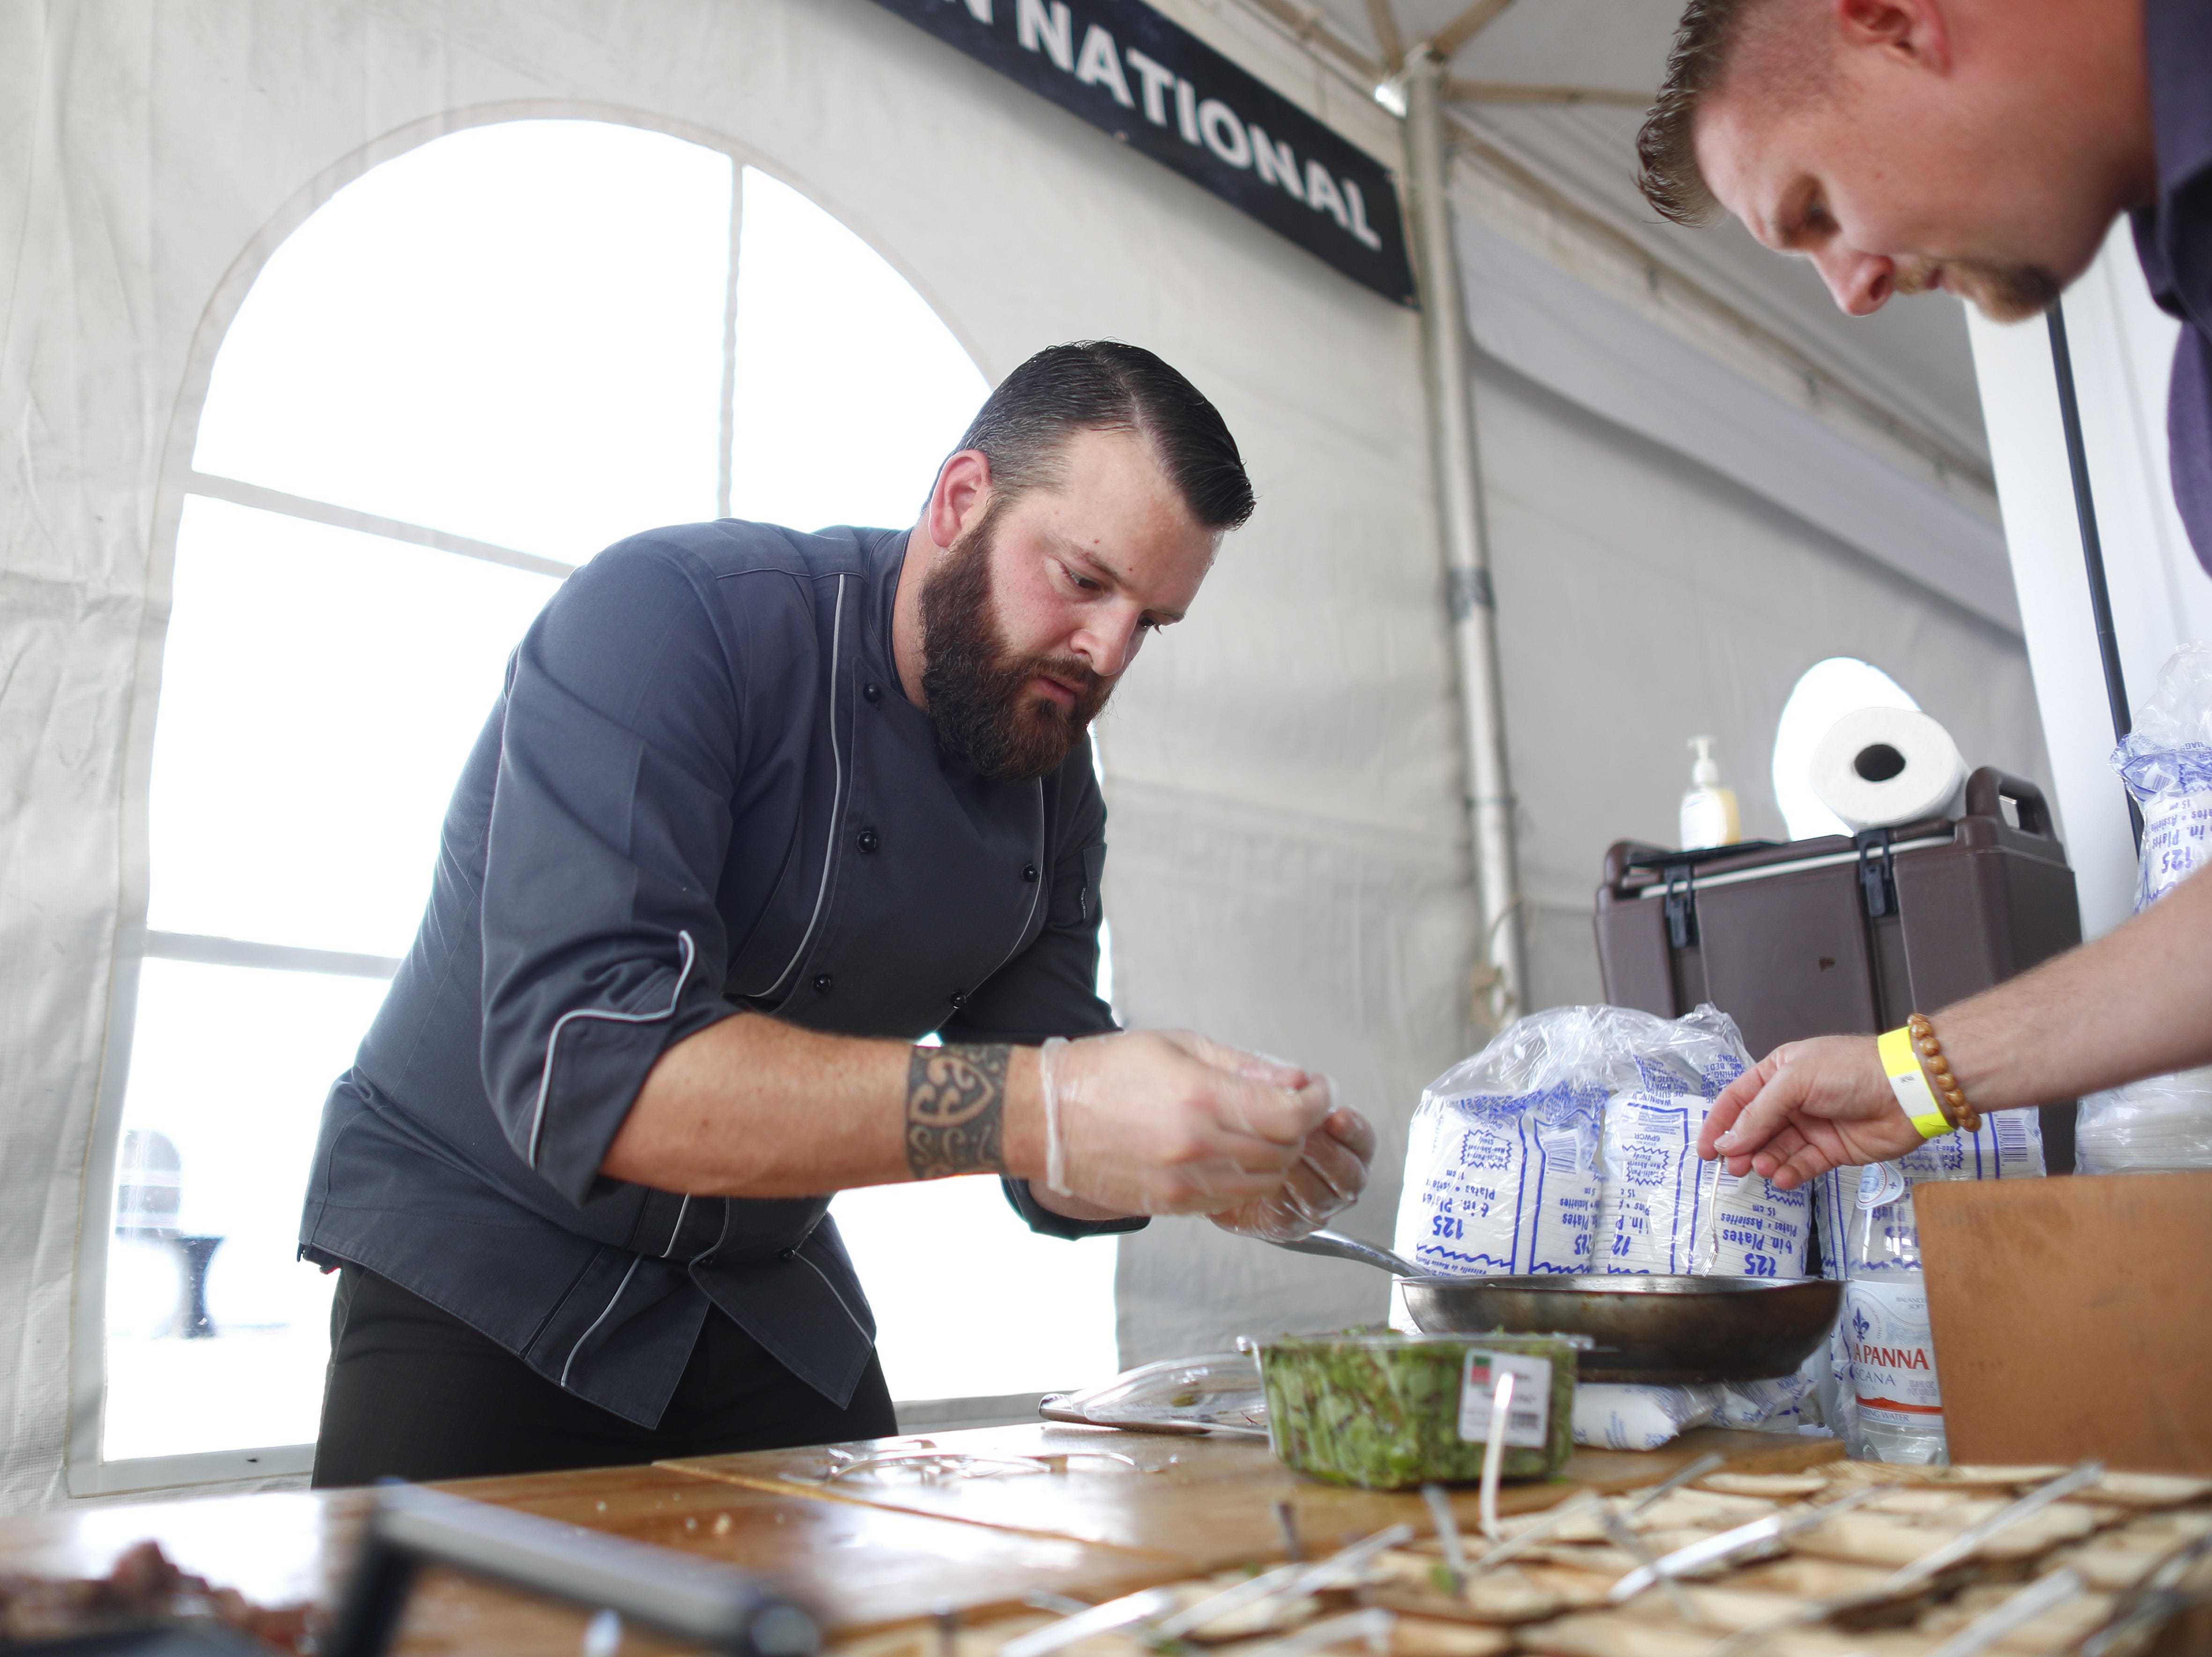 Executive chef Jonathan Stutzman puts the last touches on his Snowflake Wagyu Miyazaki Ribeye with smoke foie grass from Omni Hotels and Resorts bduring the azcentral Wine & Food Experience at WestWorld of Scottsdale, Ariz. on Nov. 3, 2018.